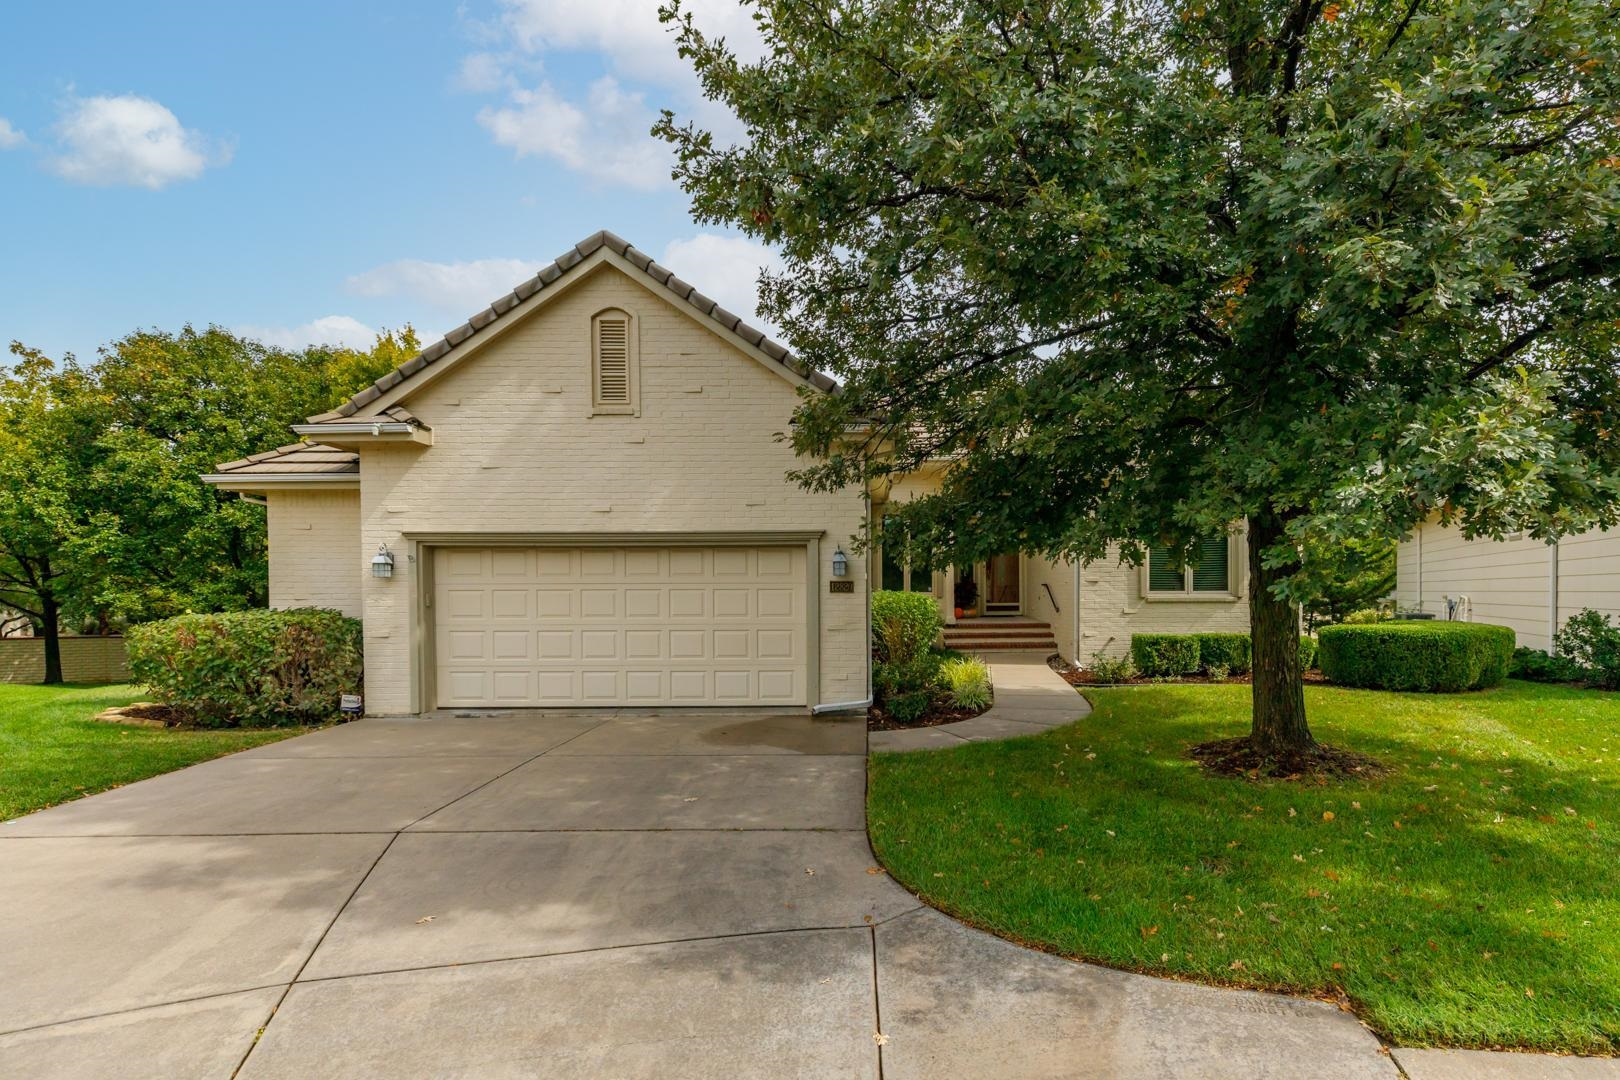 Welcome home! This is a wonderful one owner home with a great floor plan in the Crest Ridge neighbor